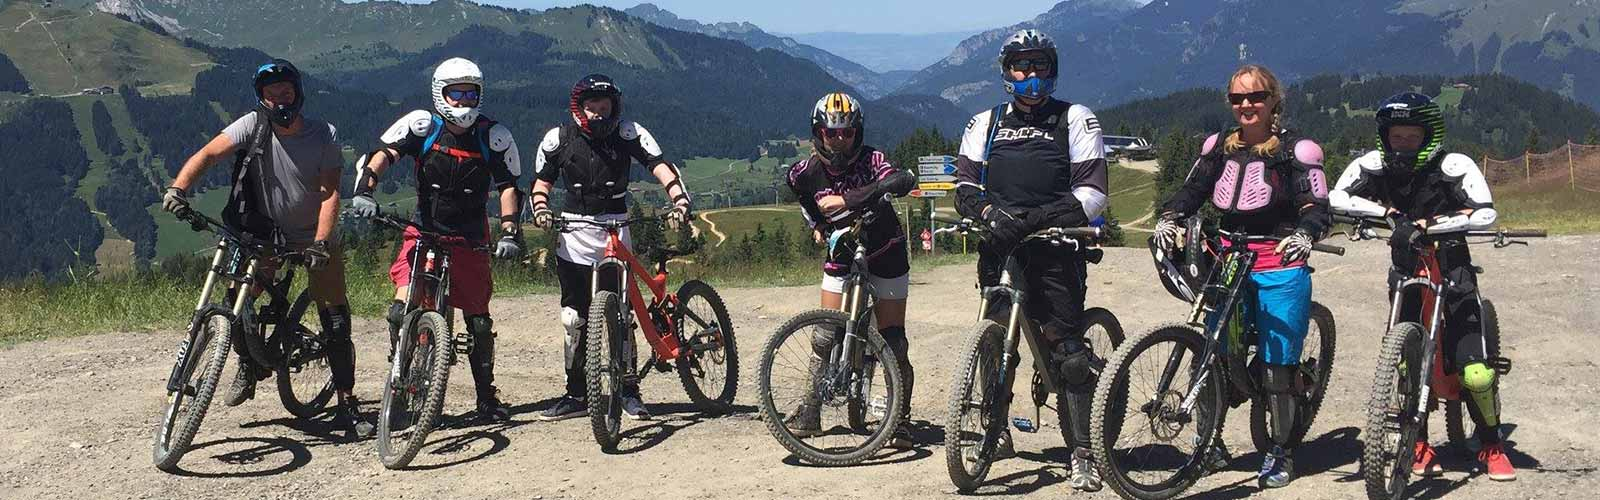 Mountain biking in the Morzine mountains